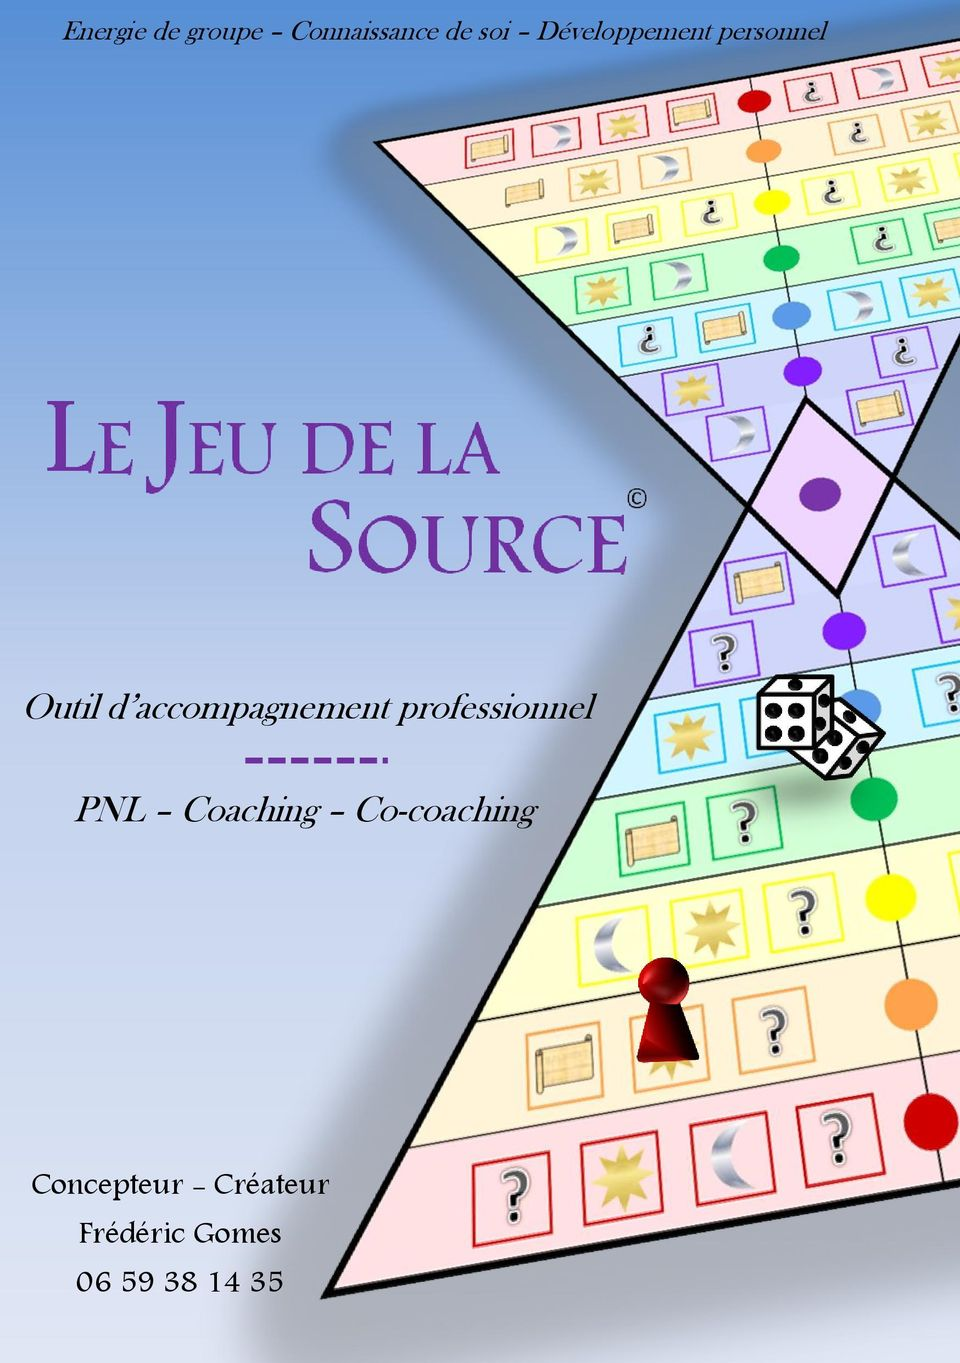 accompagnement professionnel PNL Coaching